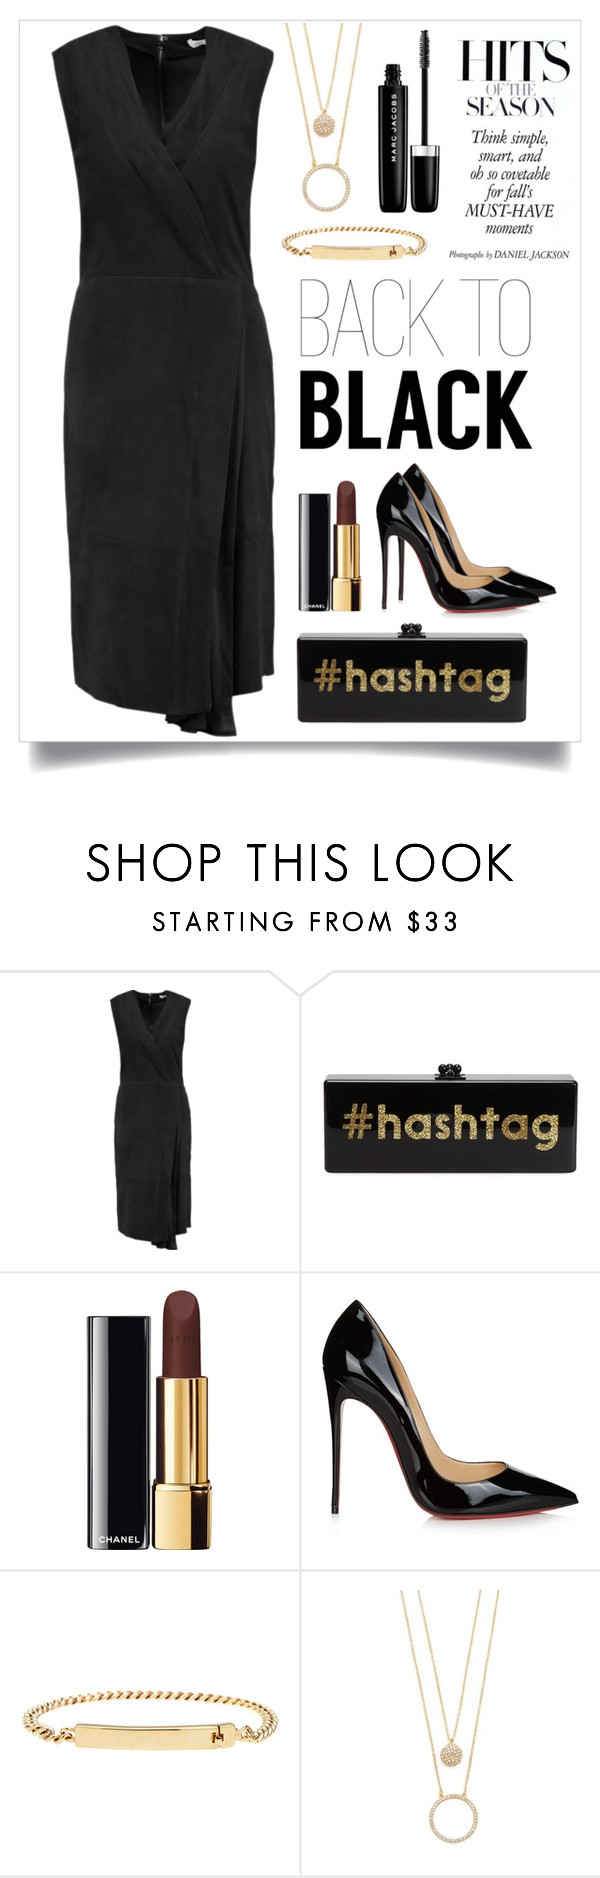 """""""Back to Black"""" by frechelibelle ❤ liked on Polyvore featuring Vince, Edie Parker, Chanel, Christian Louboutin, A.P.C., Kate Spade, Marc Jacobs, black, suede and christianlouboutin"""